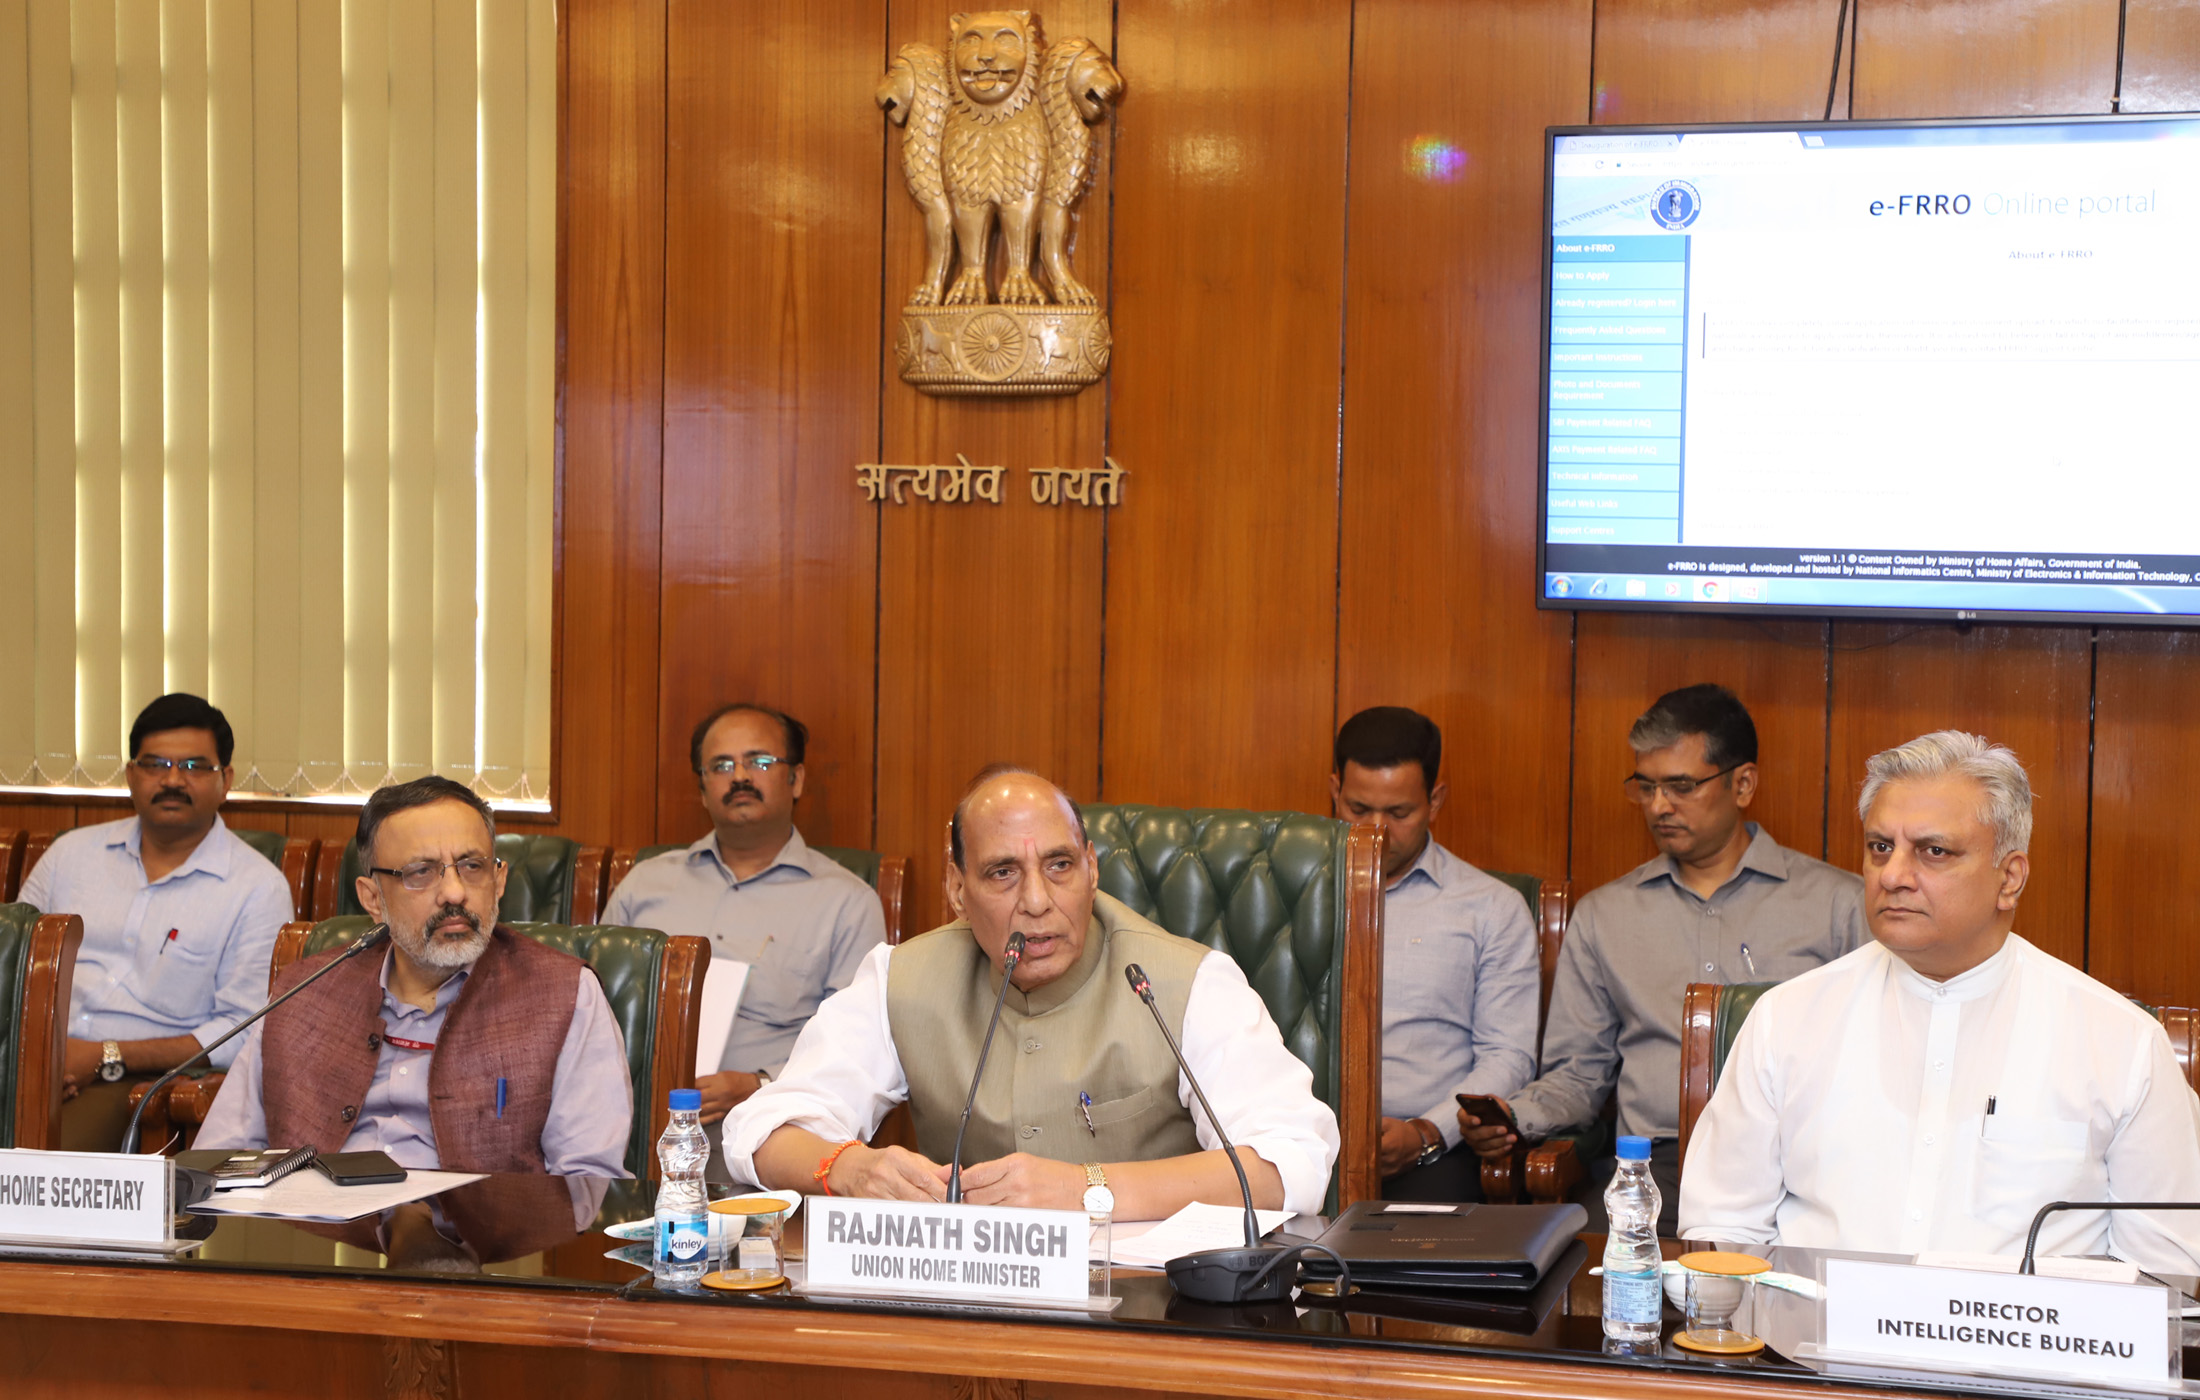 Image result for Rajnath Singh, the Union Home Minister, on April 13, 2018 launched the e-Foreigners Regional Registration Office (e-FRRO) Scheme, a webbased application. The e-FRRO scheme aims to provide fast and efficient services to foreigners visiting India so that they have a pleasant stay